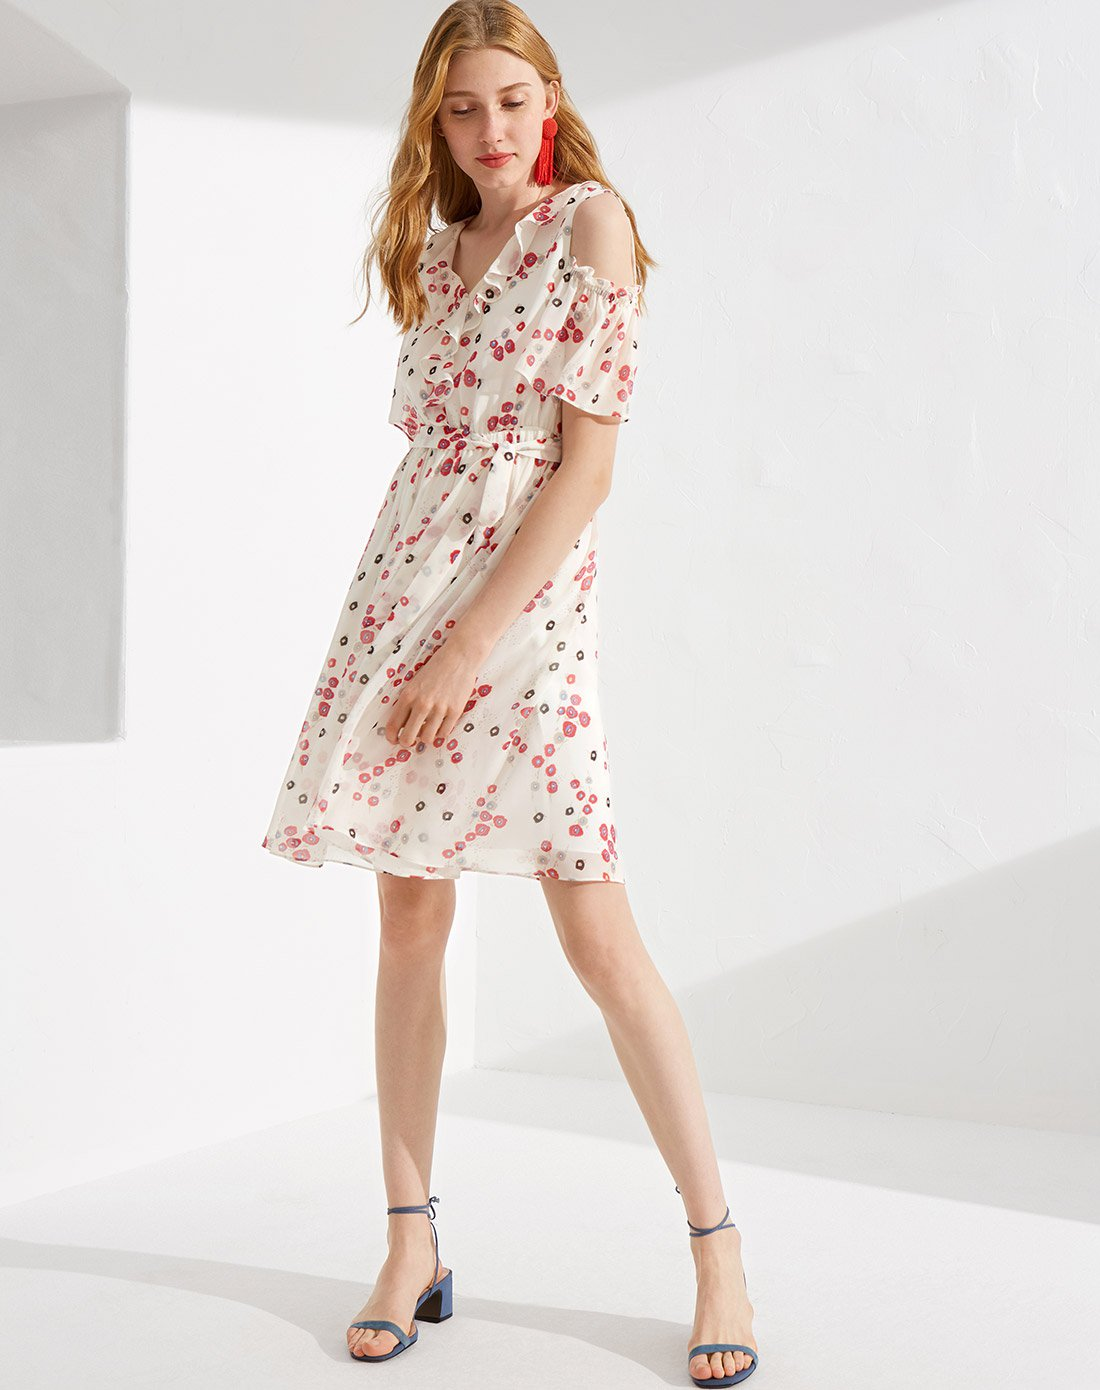 Elegant women floral printed party summer dress